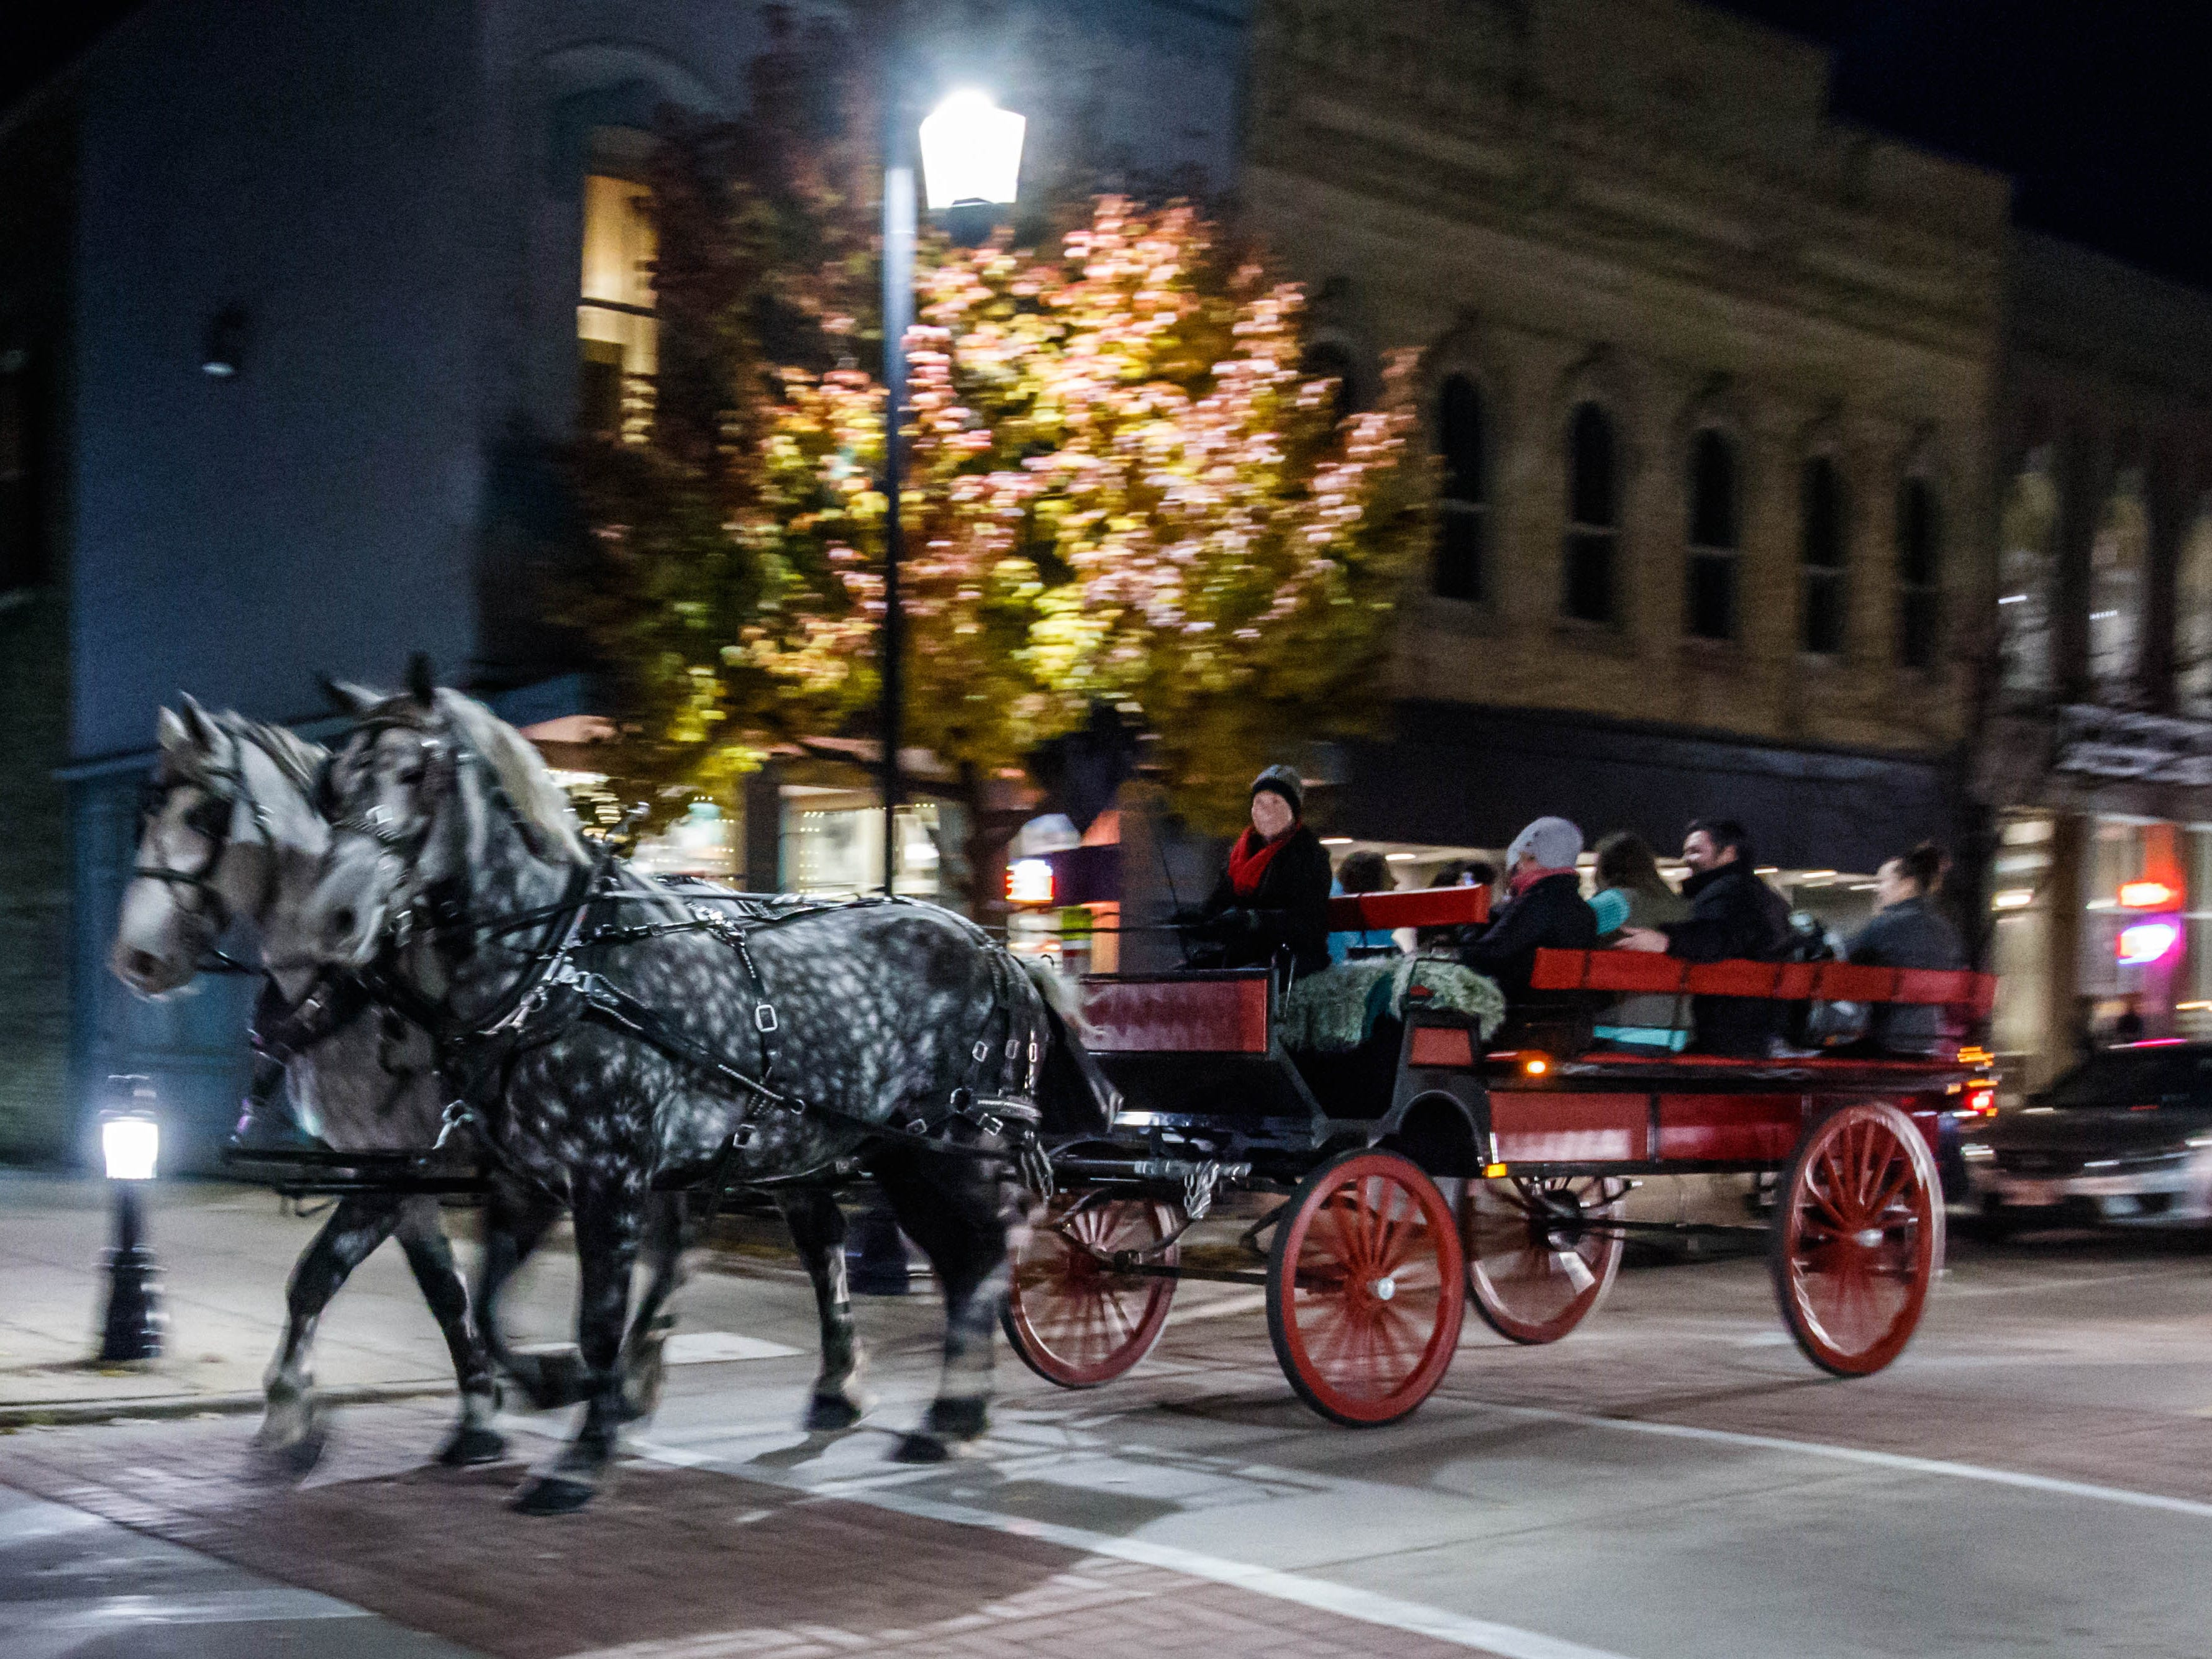 Visitors enjoy a scenic horse-drawn carriage ride from Hoof Beats Express through downtown Oconomowoc during during the annual Fall Gallery Night event on Friday, Nov. 2, 2018. The annual event, hosted by the Downtown Oconomowoc Business Association, features an evening of art, live music, shopping and more.